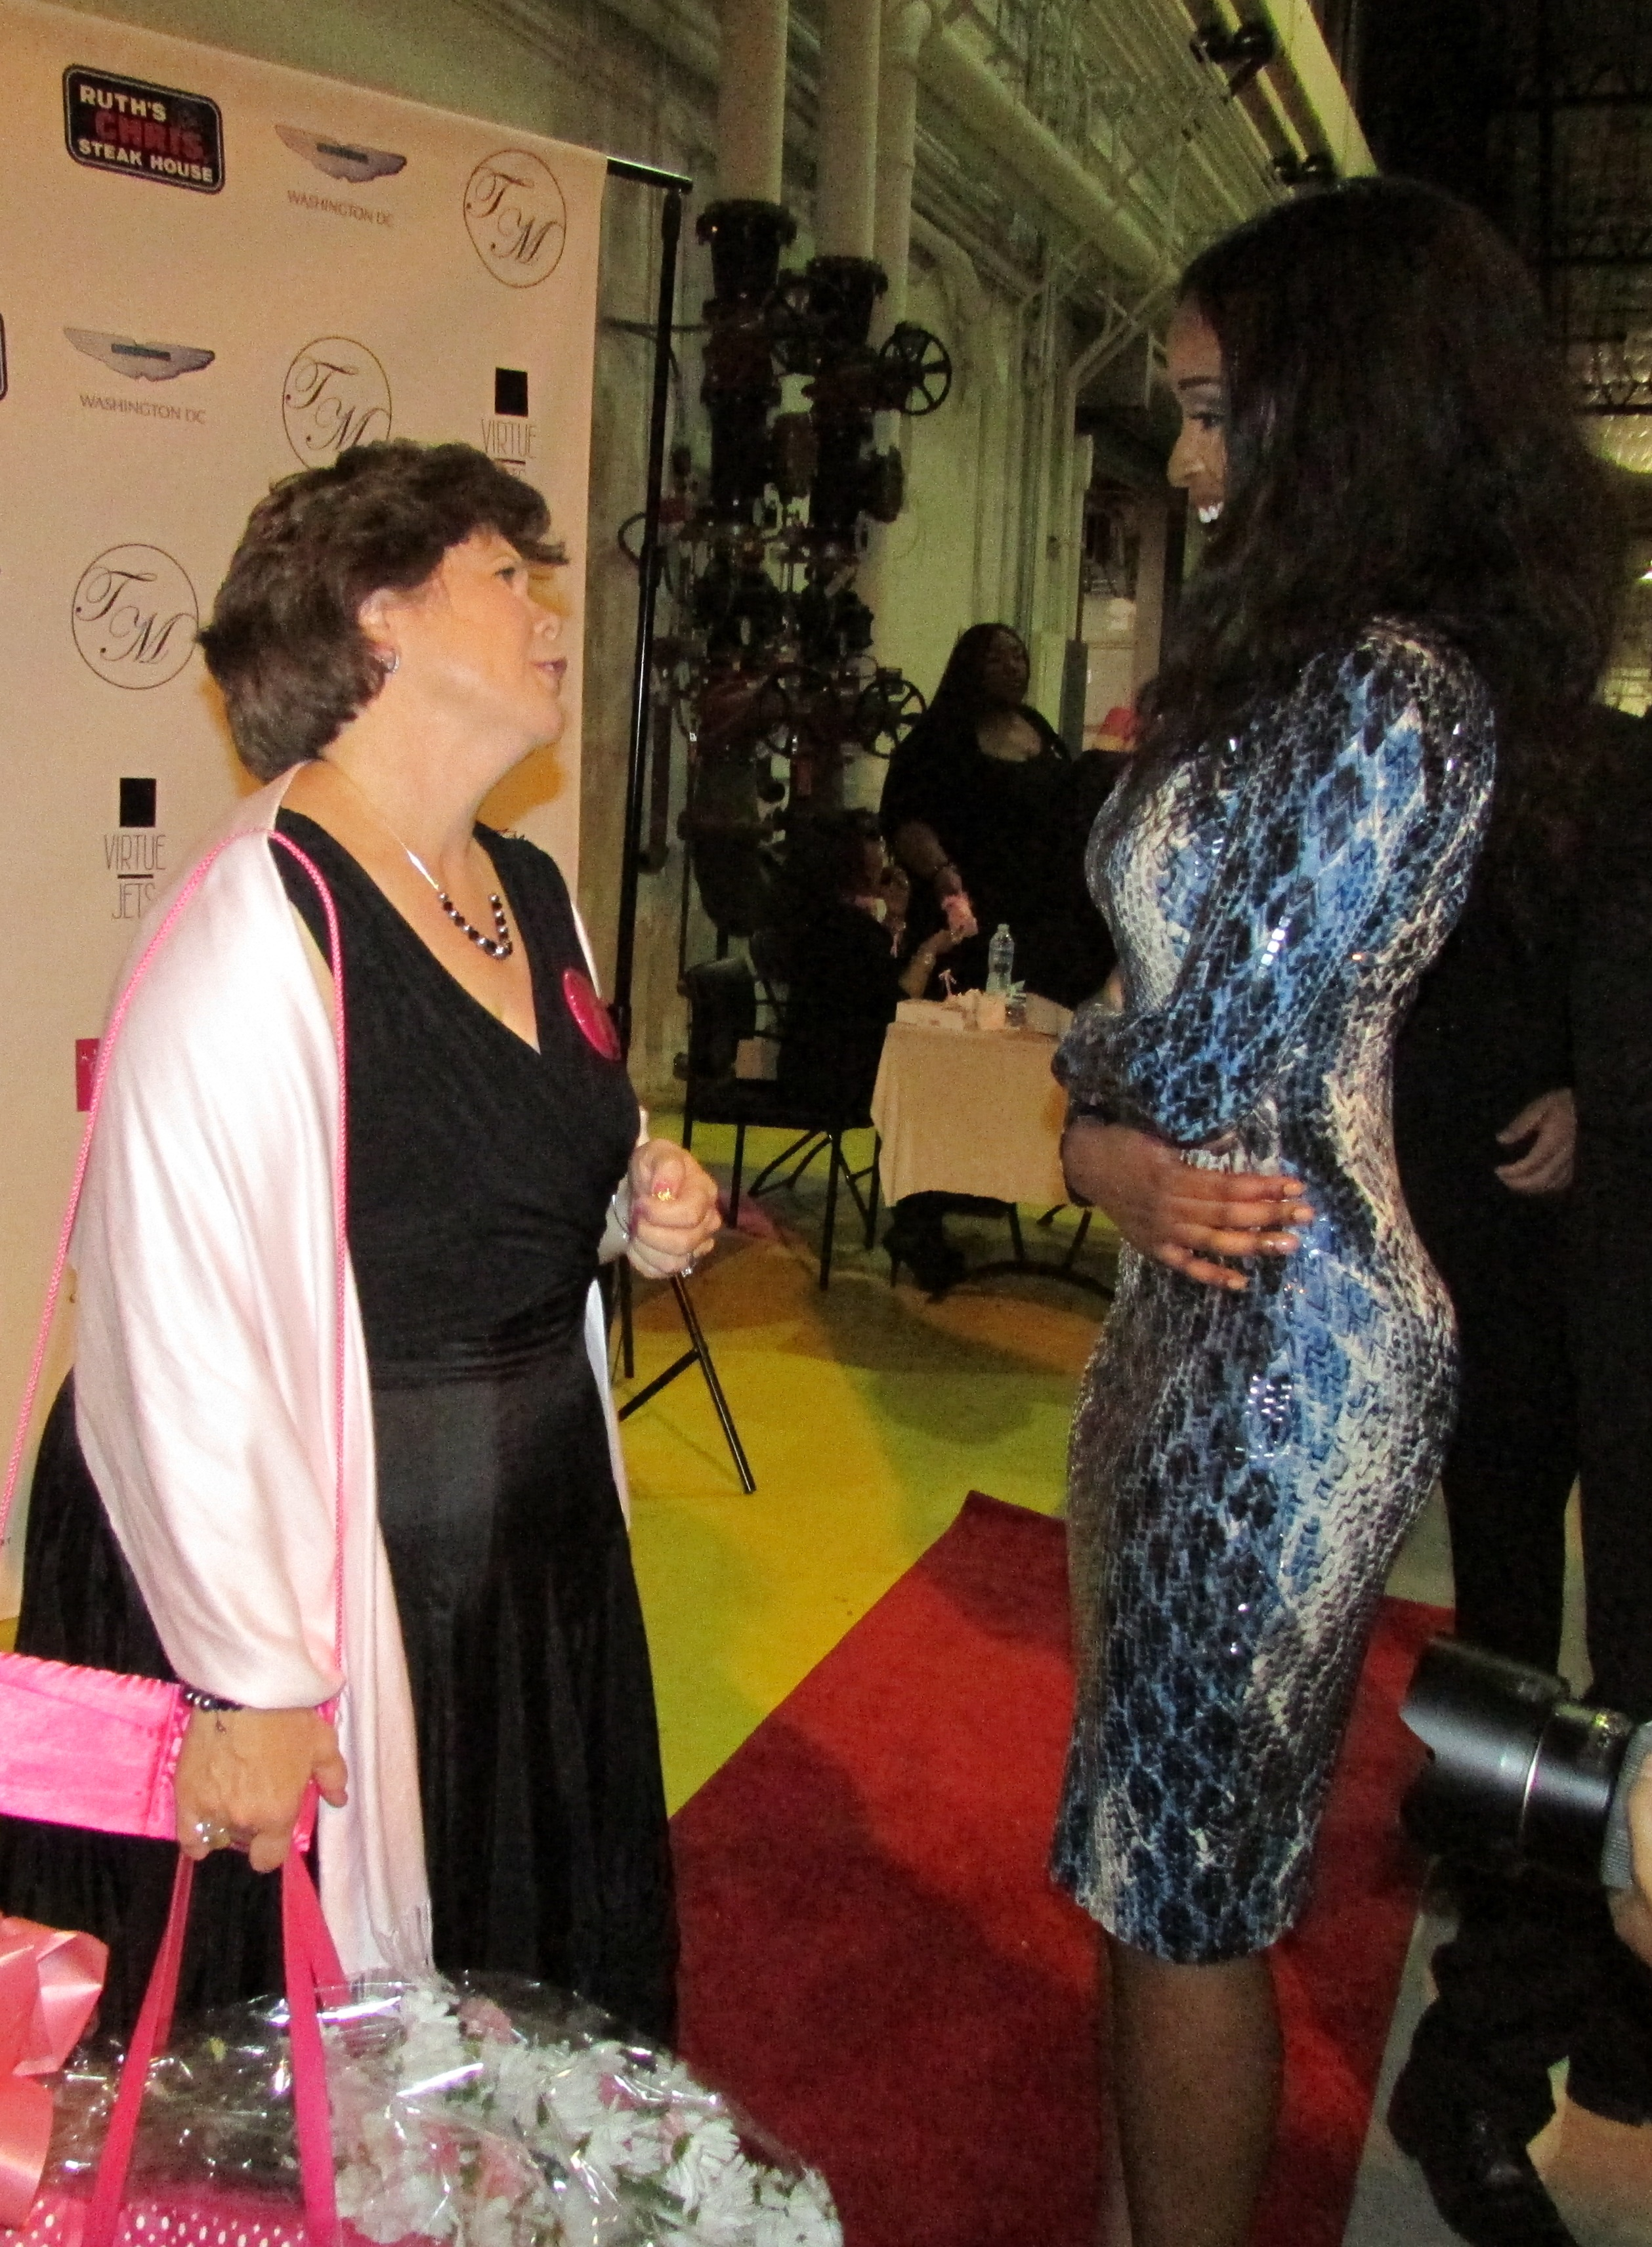 The special guest Avon speaker and the designer, TaLisa Michelle